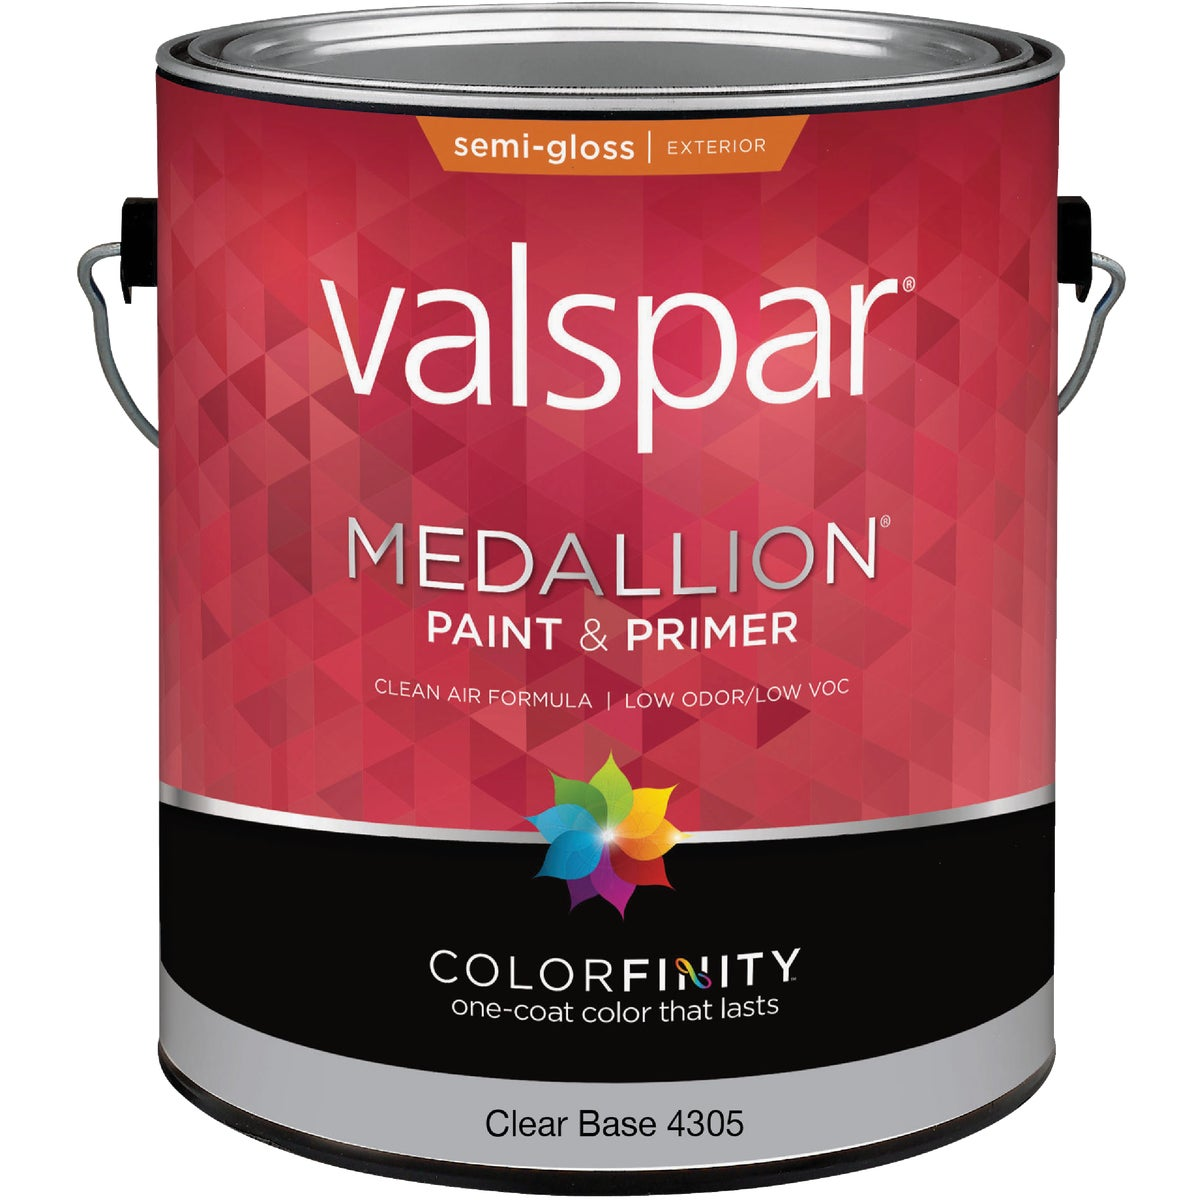 EXT S/G CLEAR BS PAINT - 027.0004305.007 by Valspar Corp